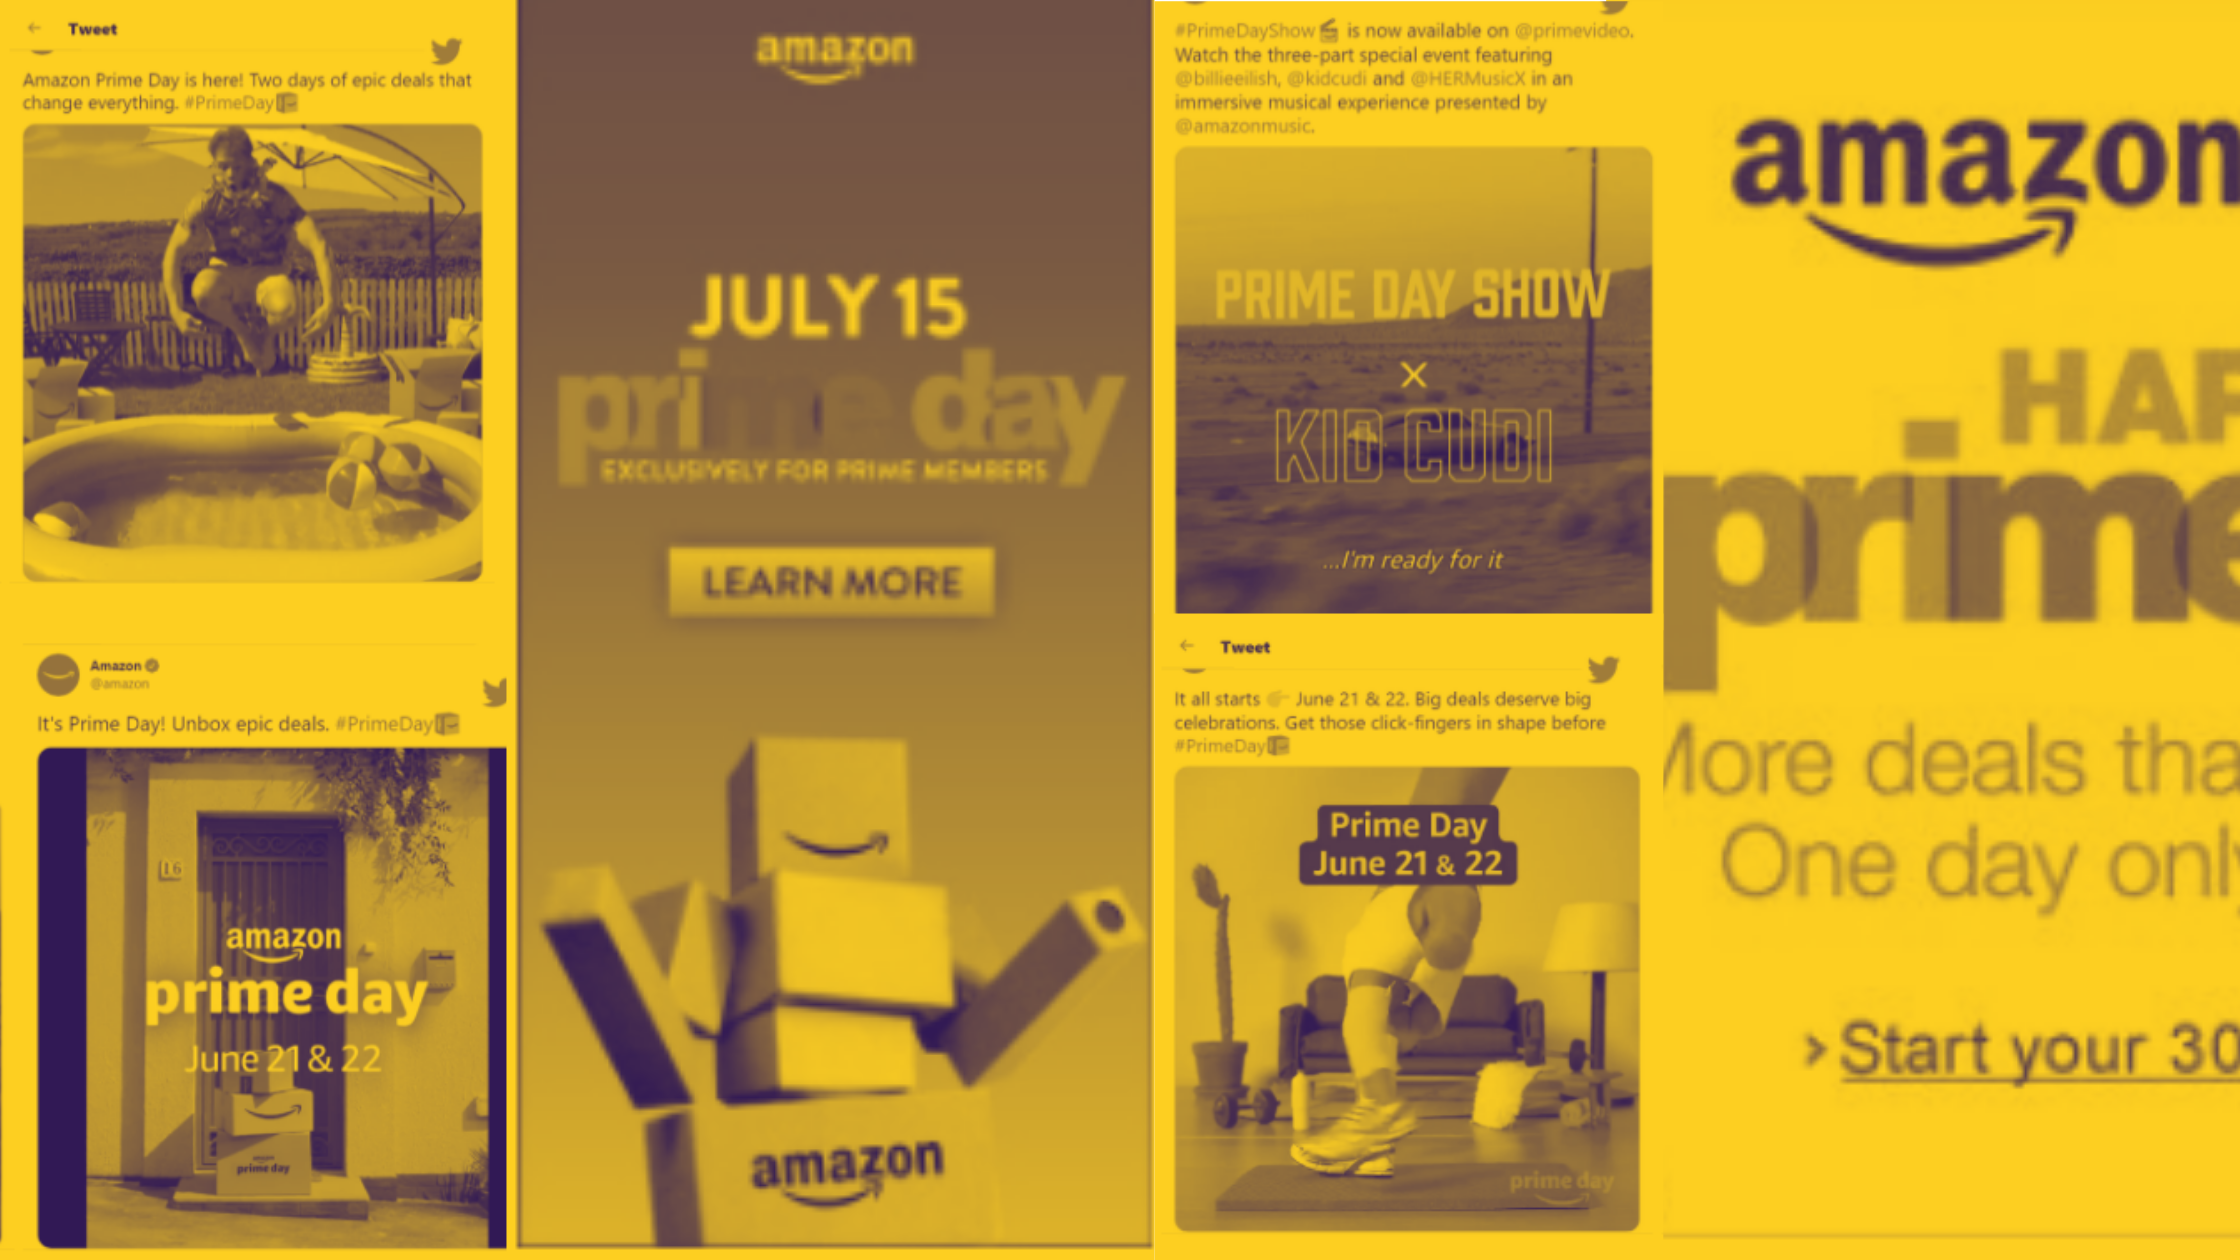 Evolution of Amazon Prime: Digitally Advertising an Online Shopping Holiday